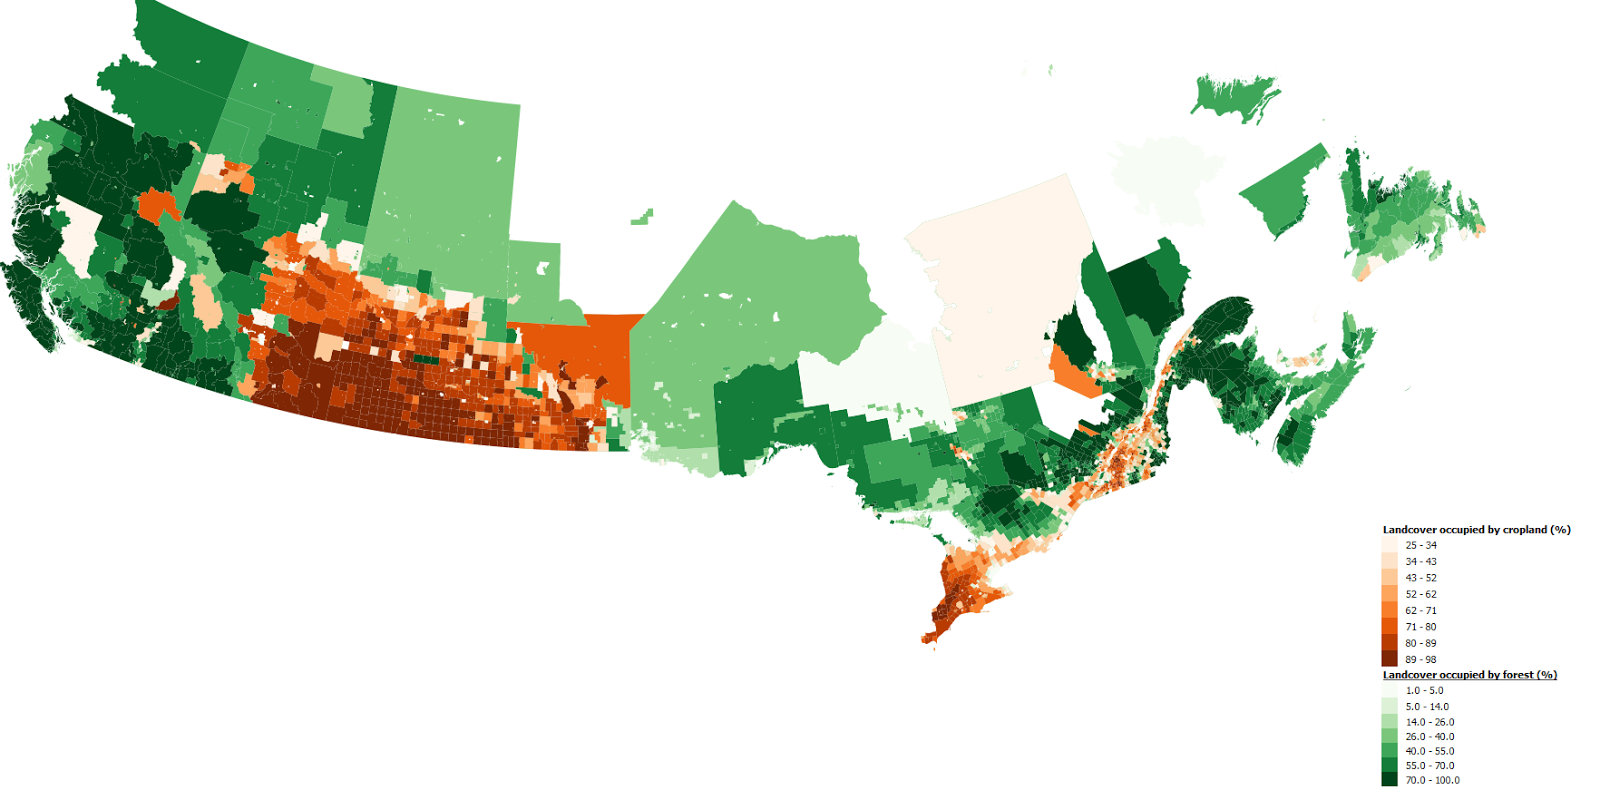 Cropland & forest landcover of Canadian census subdivisions